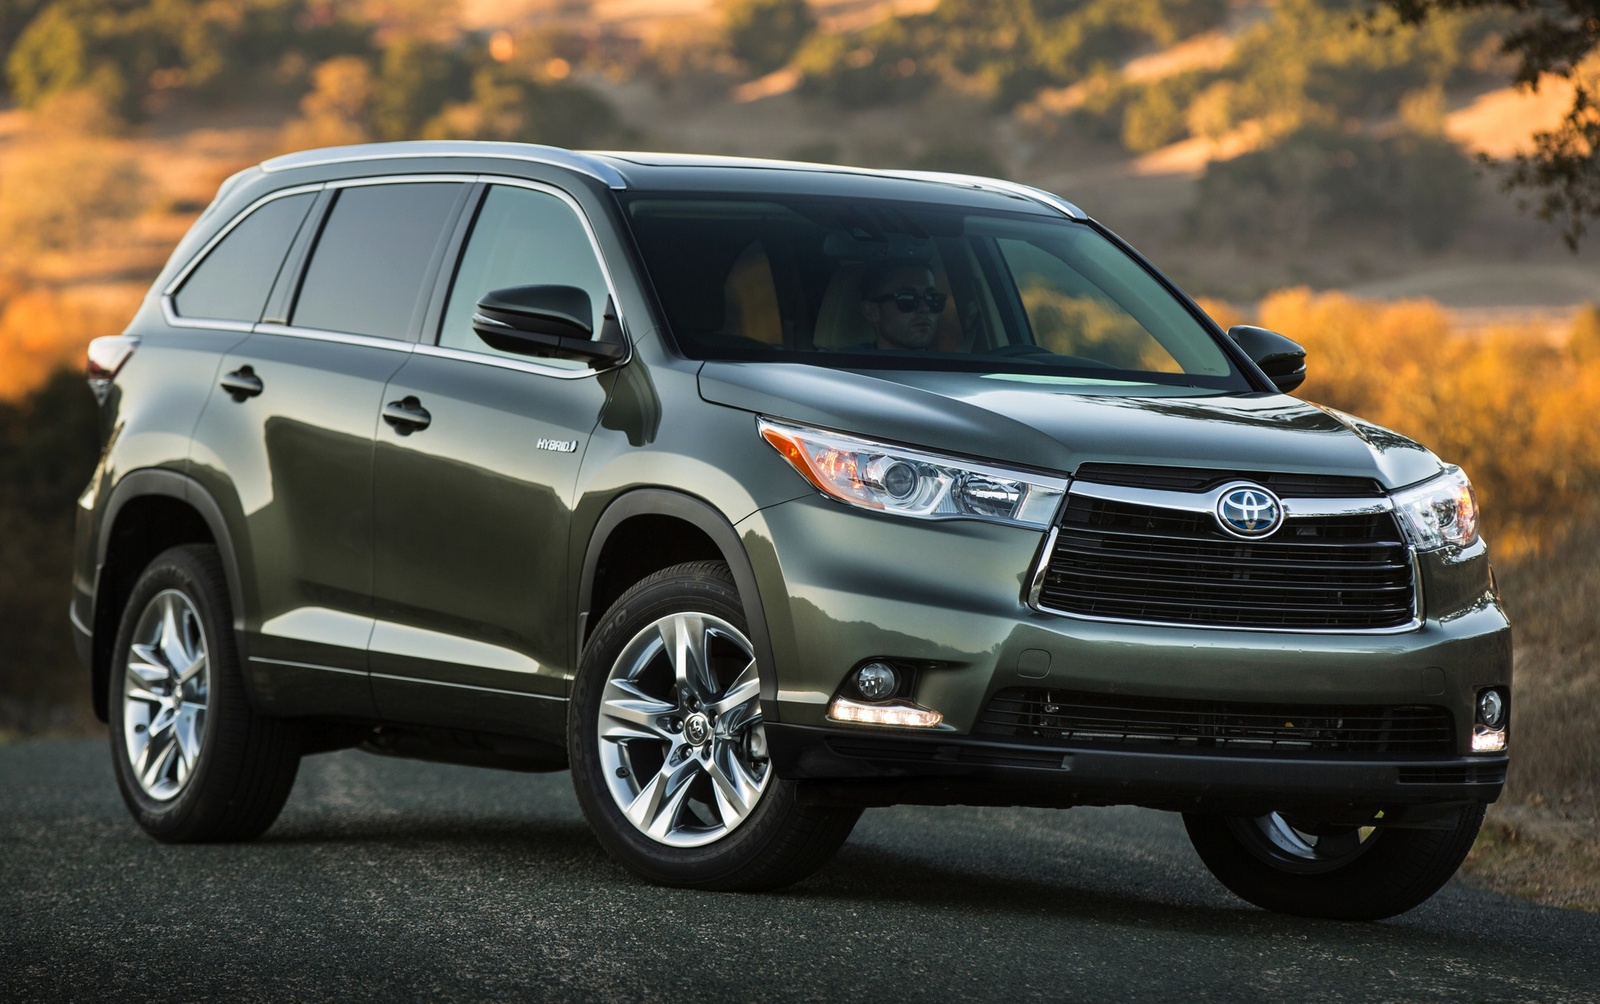 2015 toyota highlander hybrid pictures cargurus. Black Bedroom Furniture Sets. Home Design Ideas